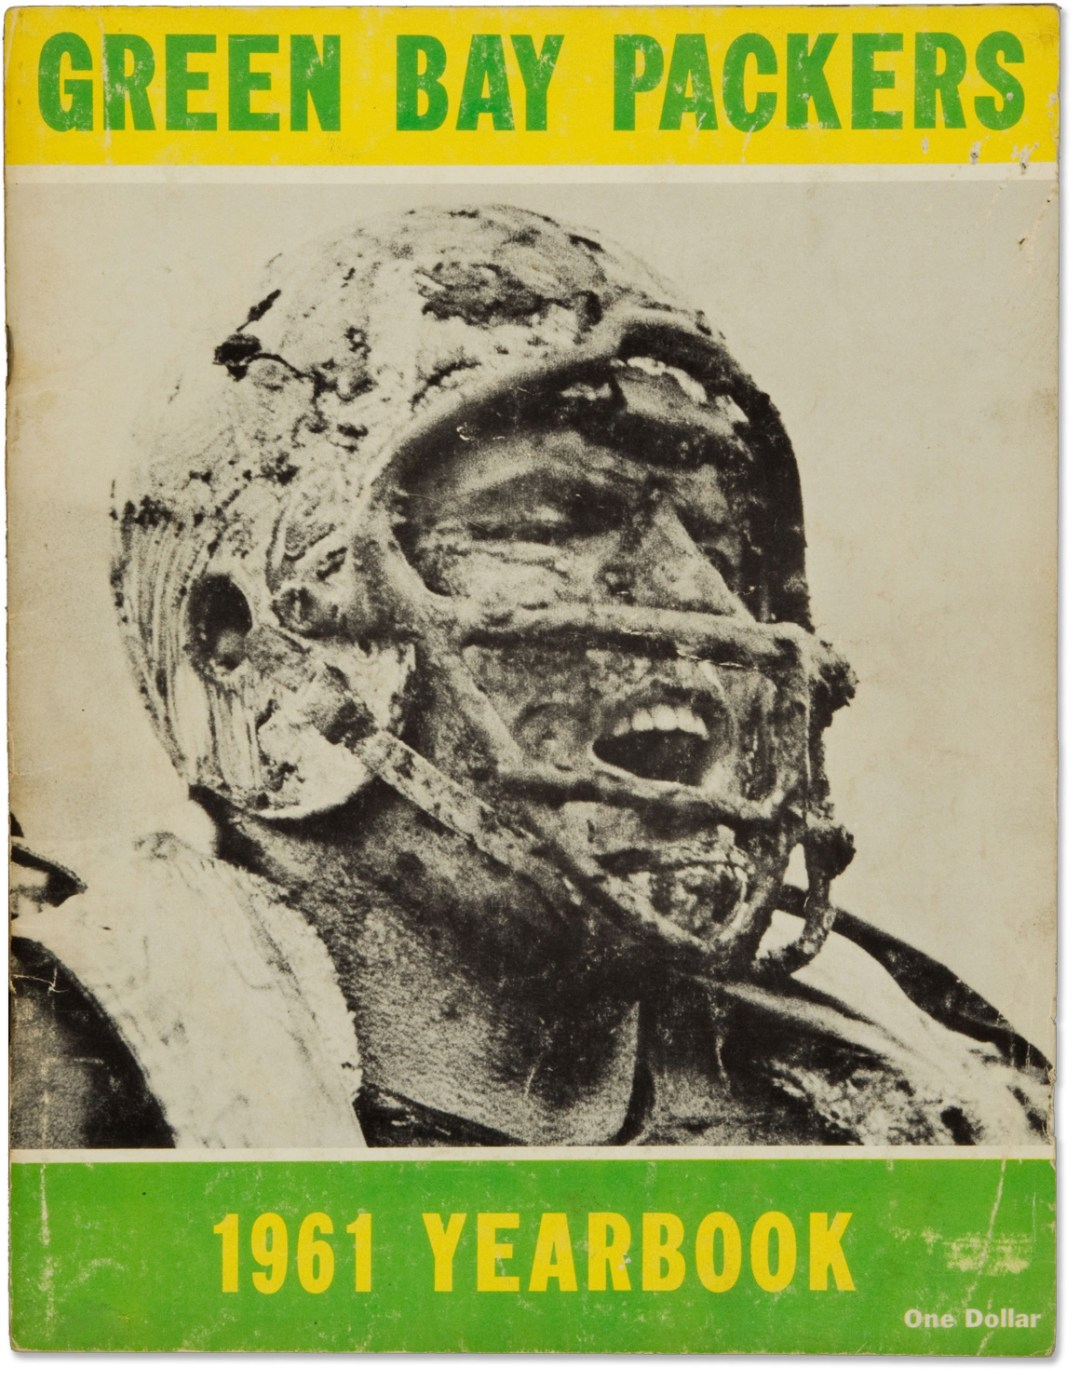 1961 Green Bay Packers Yearbook